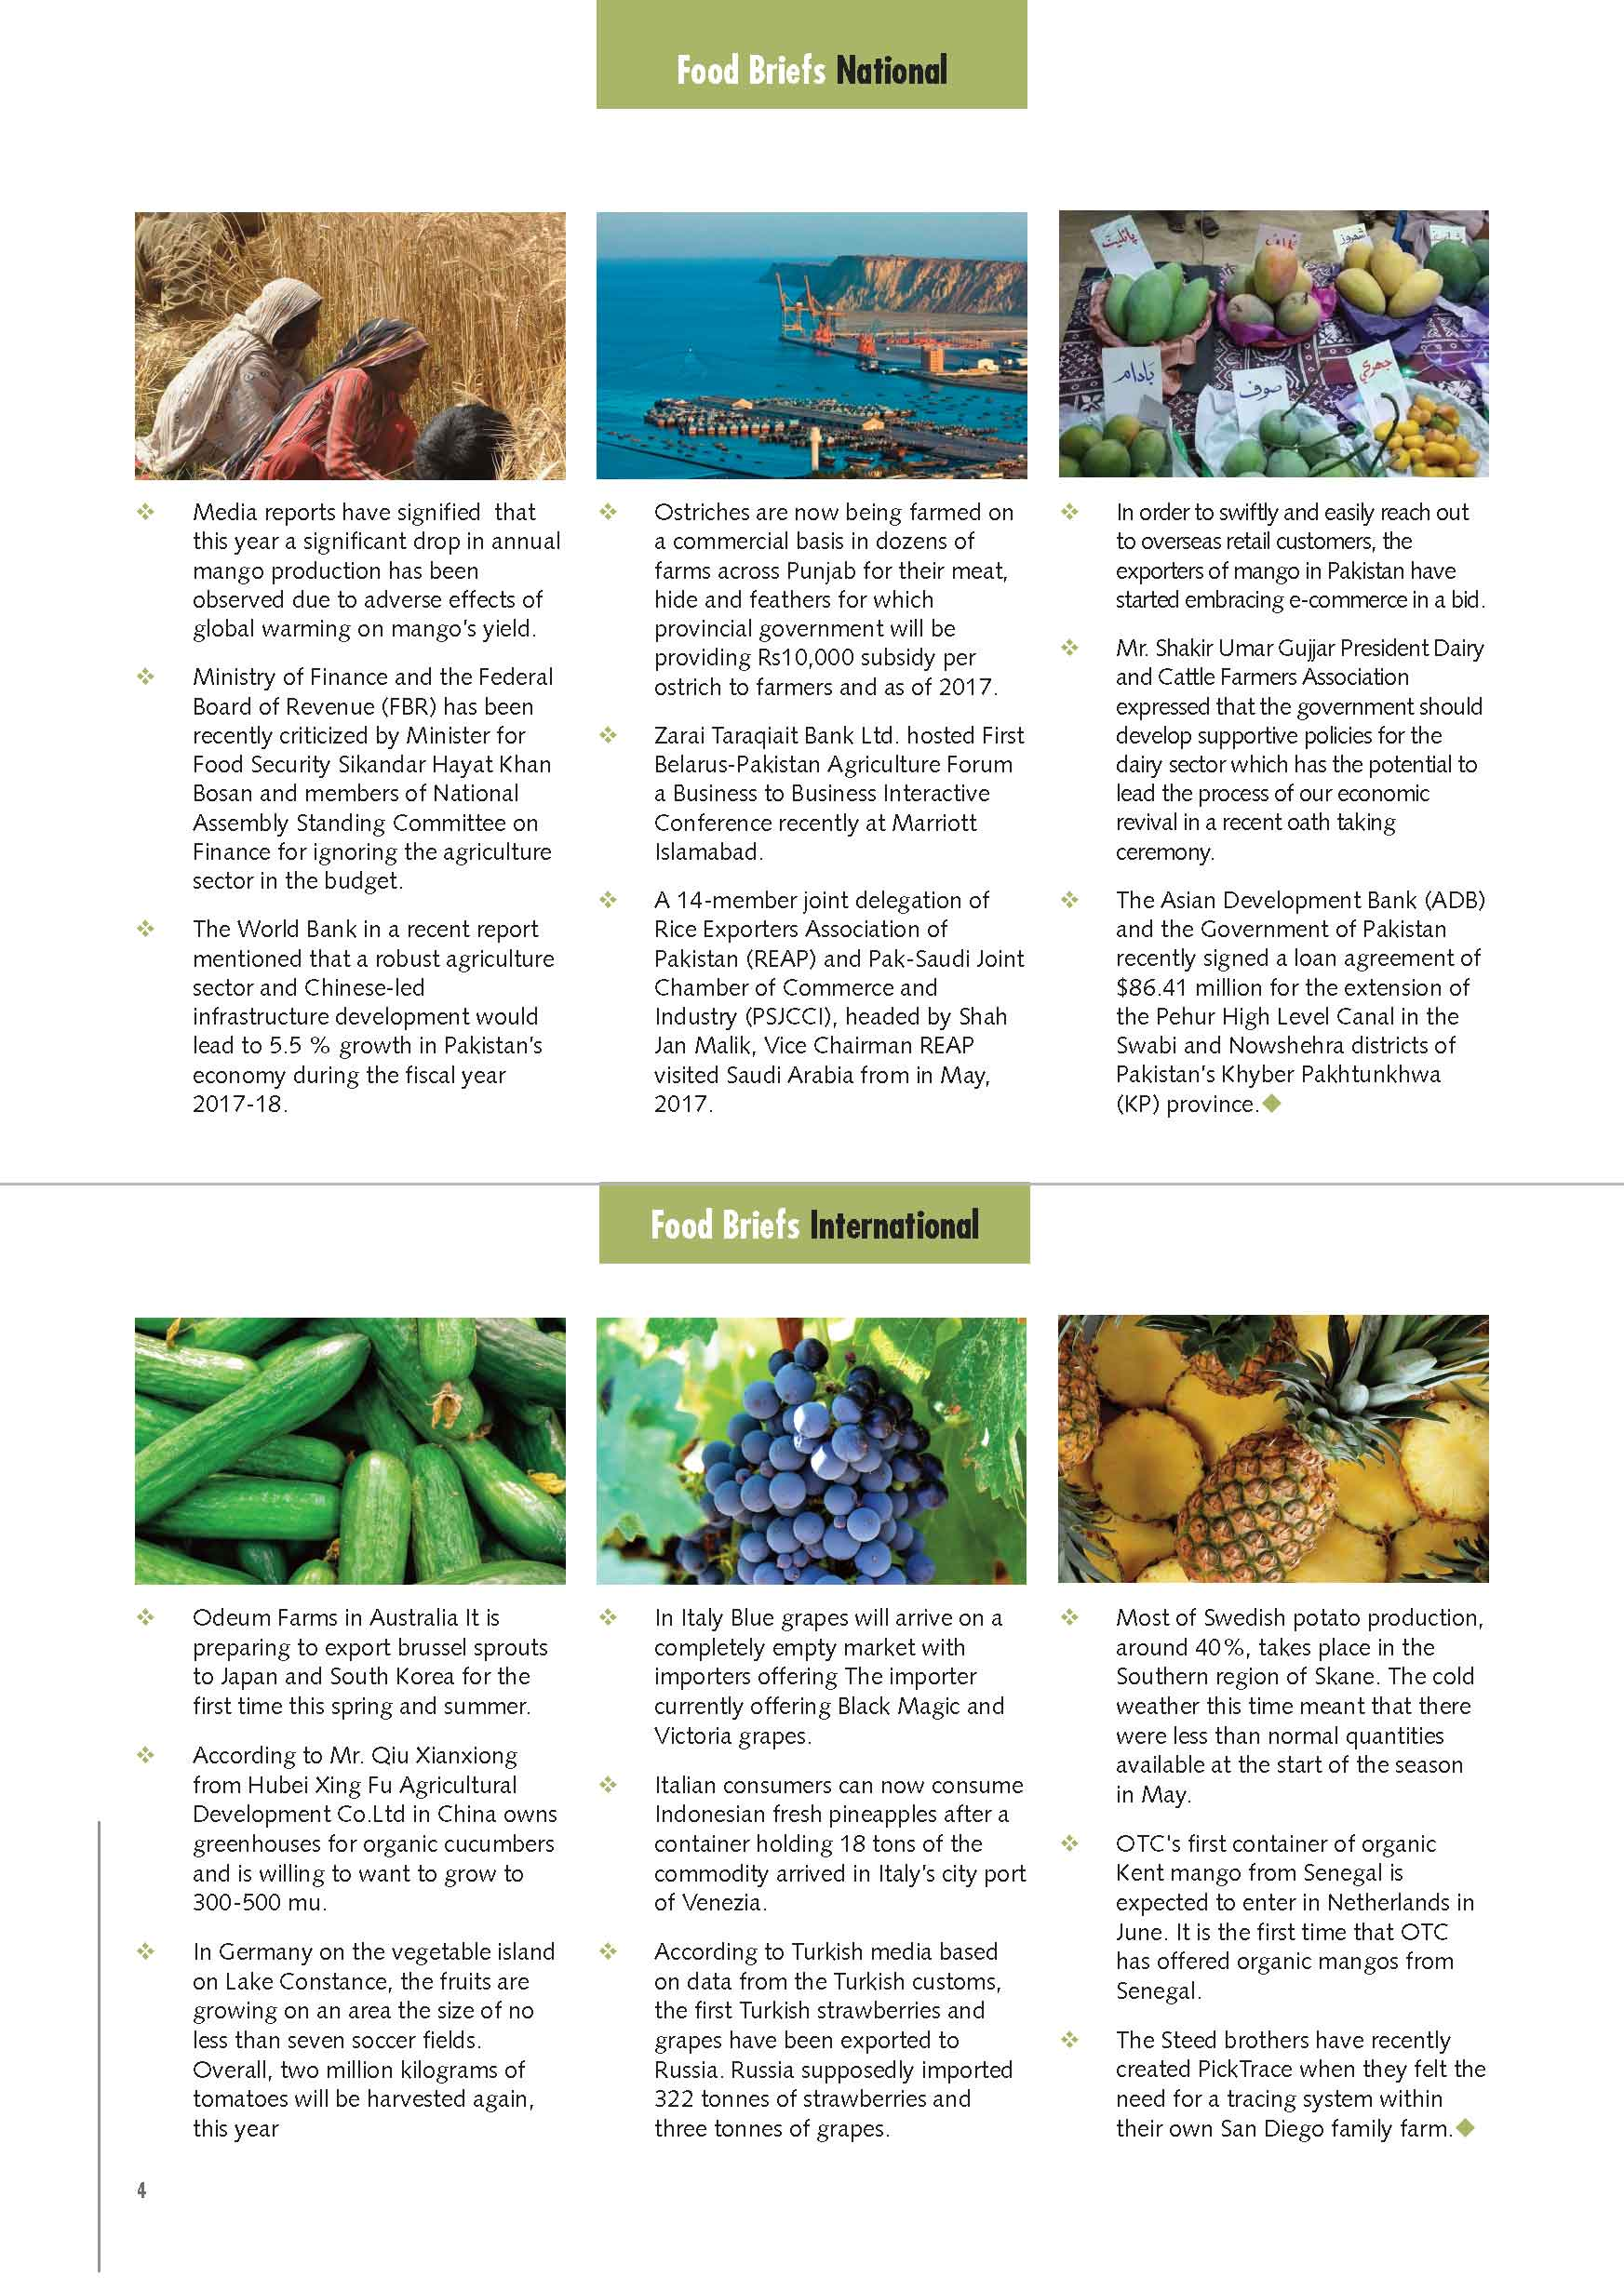 Grapes Importers In Russia